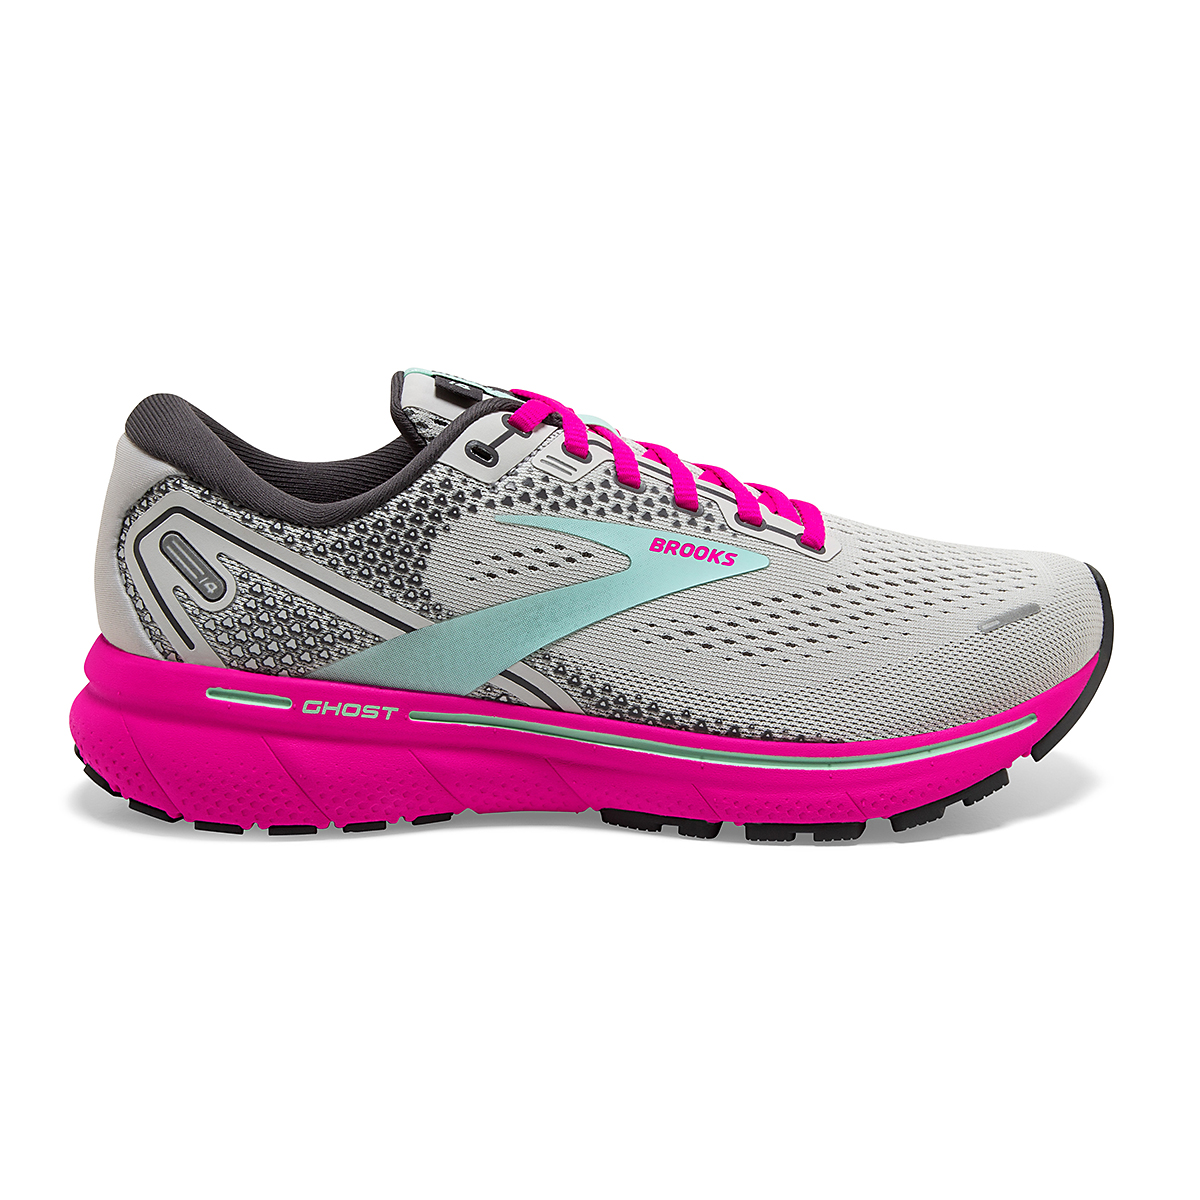 Women's Brooks Ghost 14 Running Shoe - Color: Oyster/Yucca/Pink - Size: 5 - Width: Regular, Oyster/Yucca/Pink, large, image 1